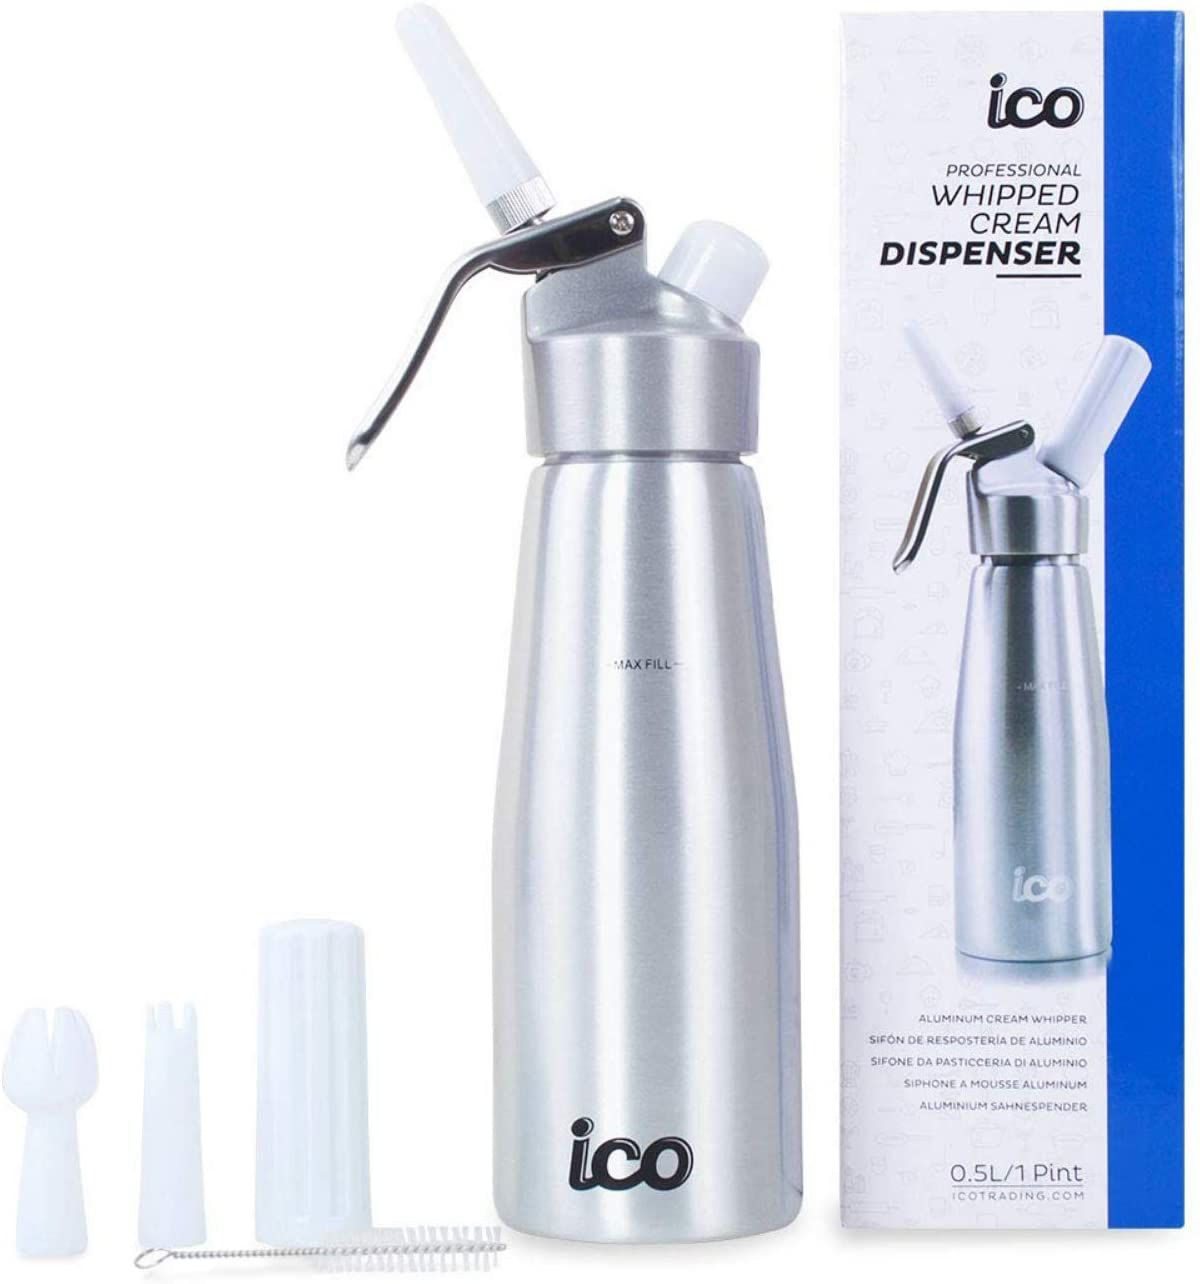 Impeccable Culinary Objects (ICO) Professional Whipped Cream Dispenser